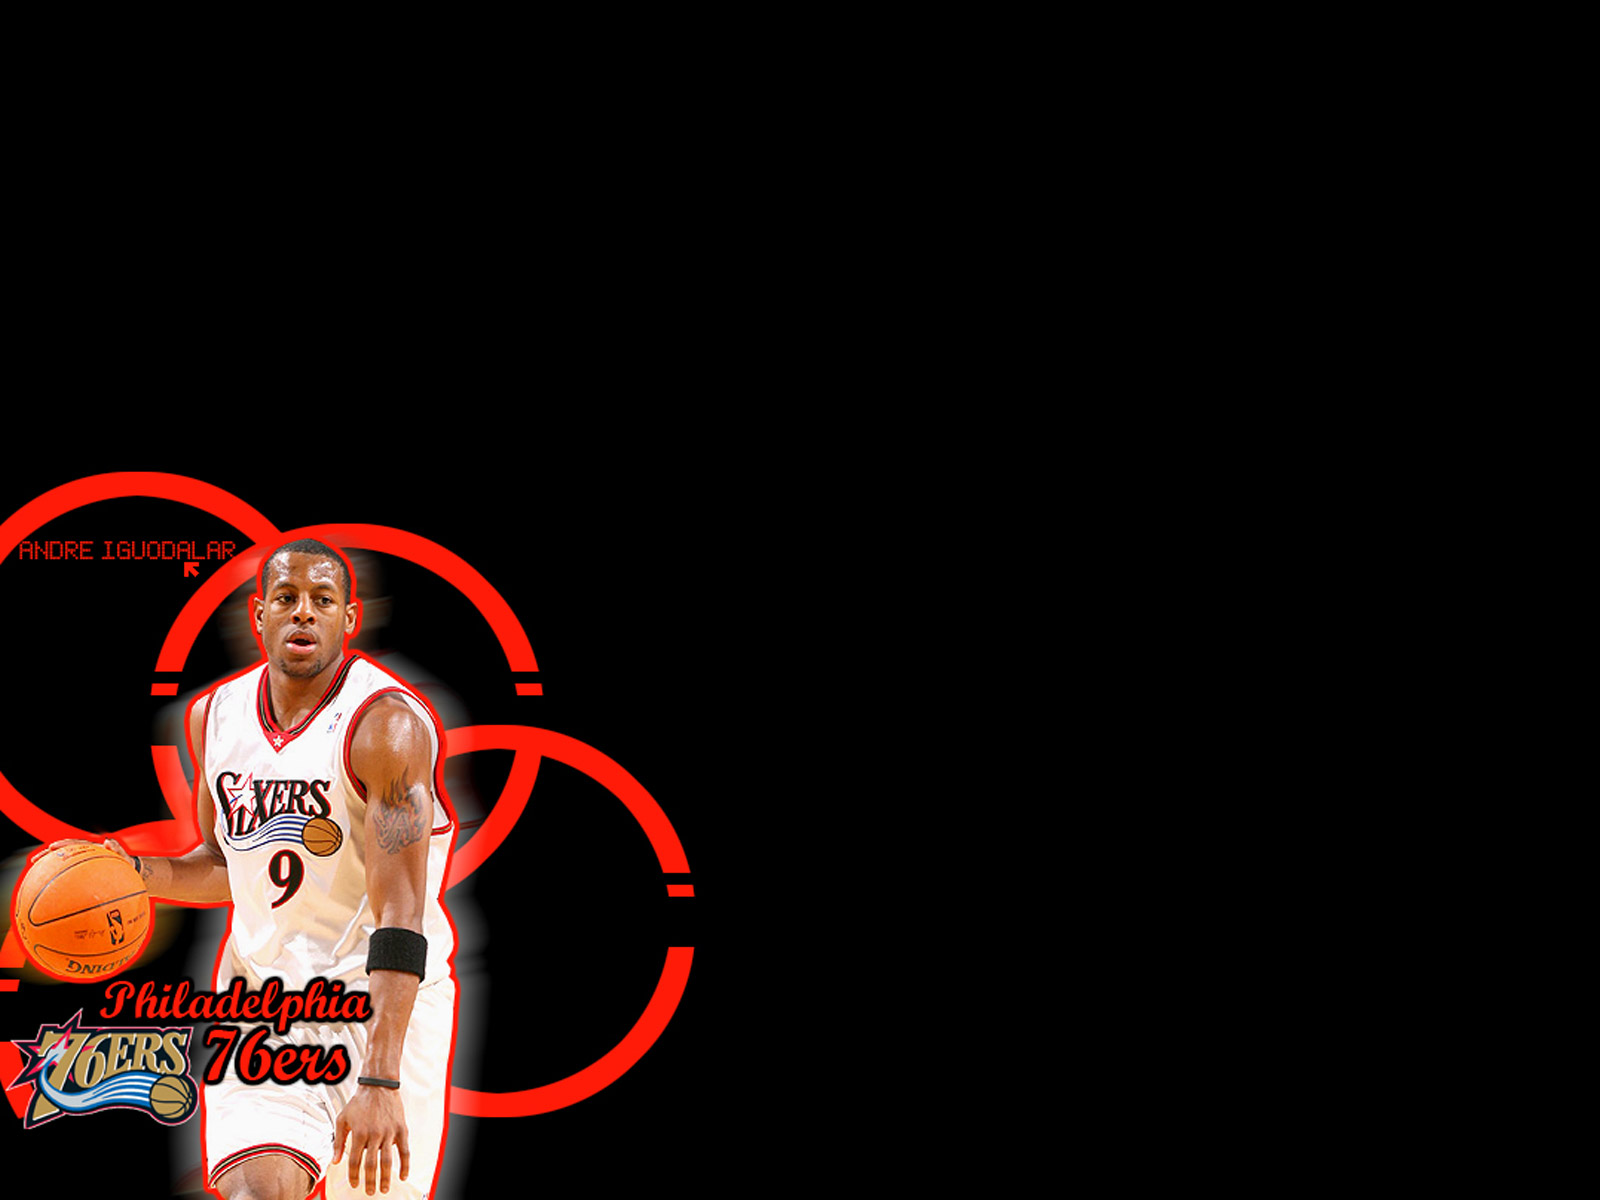 Free Download Funmozar Awesome Basketball Wallpapers 1600x1200 For Your Desktop Mobile Tablet Explore 50 Awesome Basketball Wallpapers Awesome Nba Wallpapers Hd Cool Basketball Wallpapers Hd Basketball Wallpapers Iphone